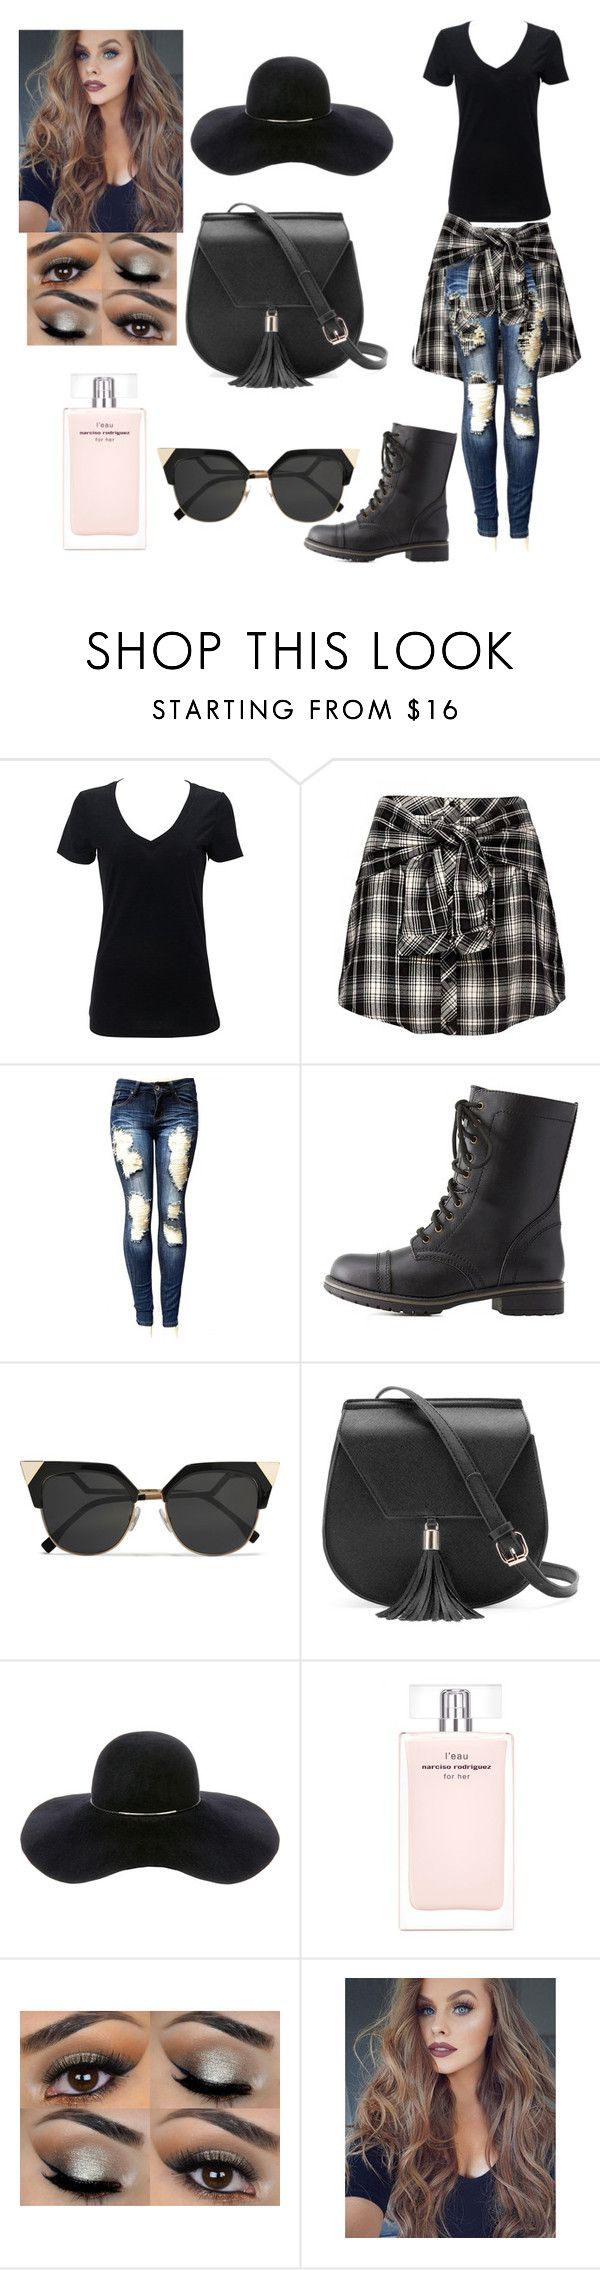 """""""Football game tomorrow!"""" by haileywilkins1 ❤ liked on Polyvore featuring Charlotte Russe, Fendi, Yoki, Eugenia Kim and Narciso Rodriguez"""